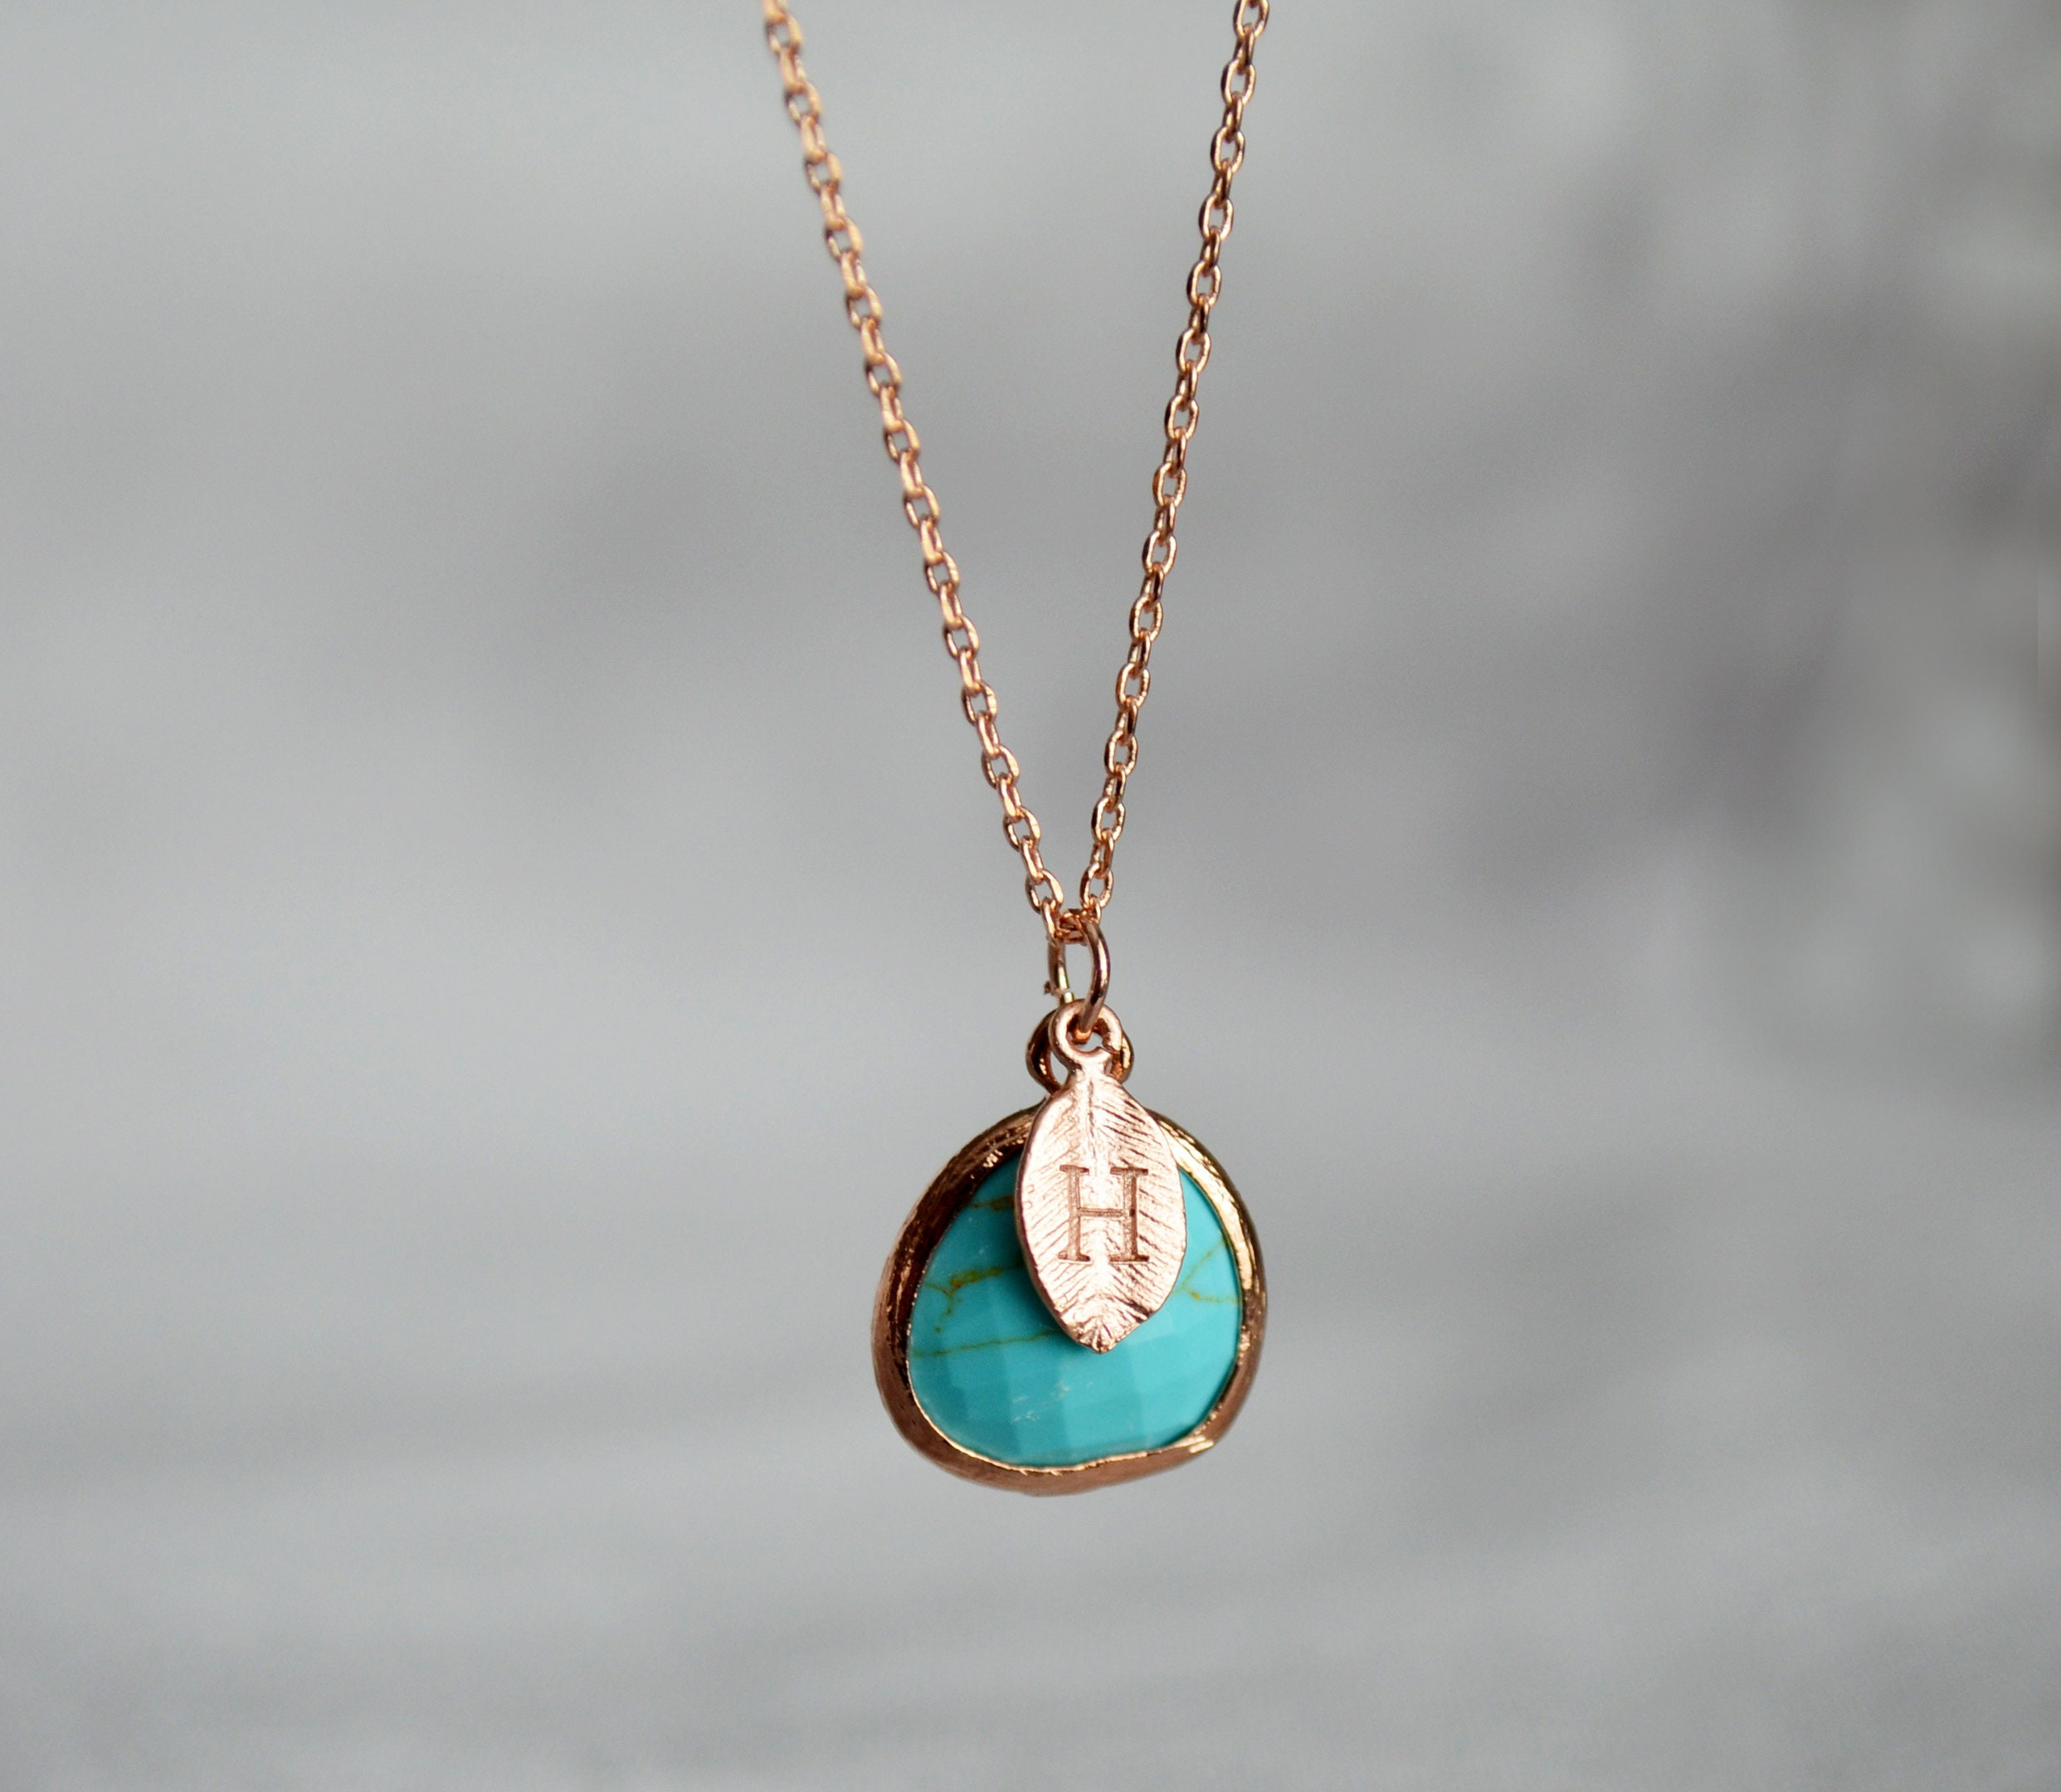 Turquoise Stone Anniversary Gift Turquoise Coin Layering Necklace Gift for Bride Everyday Necklace December Birthstone